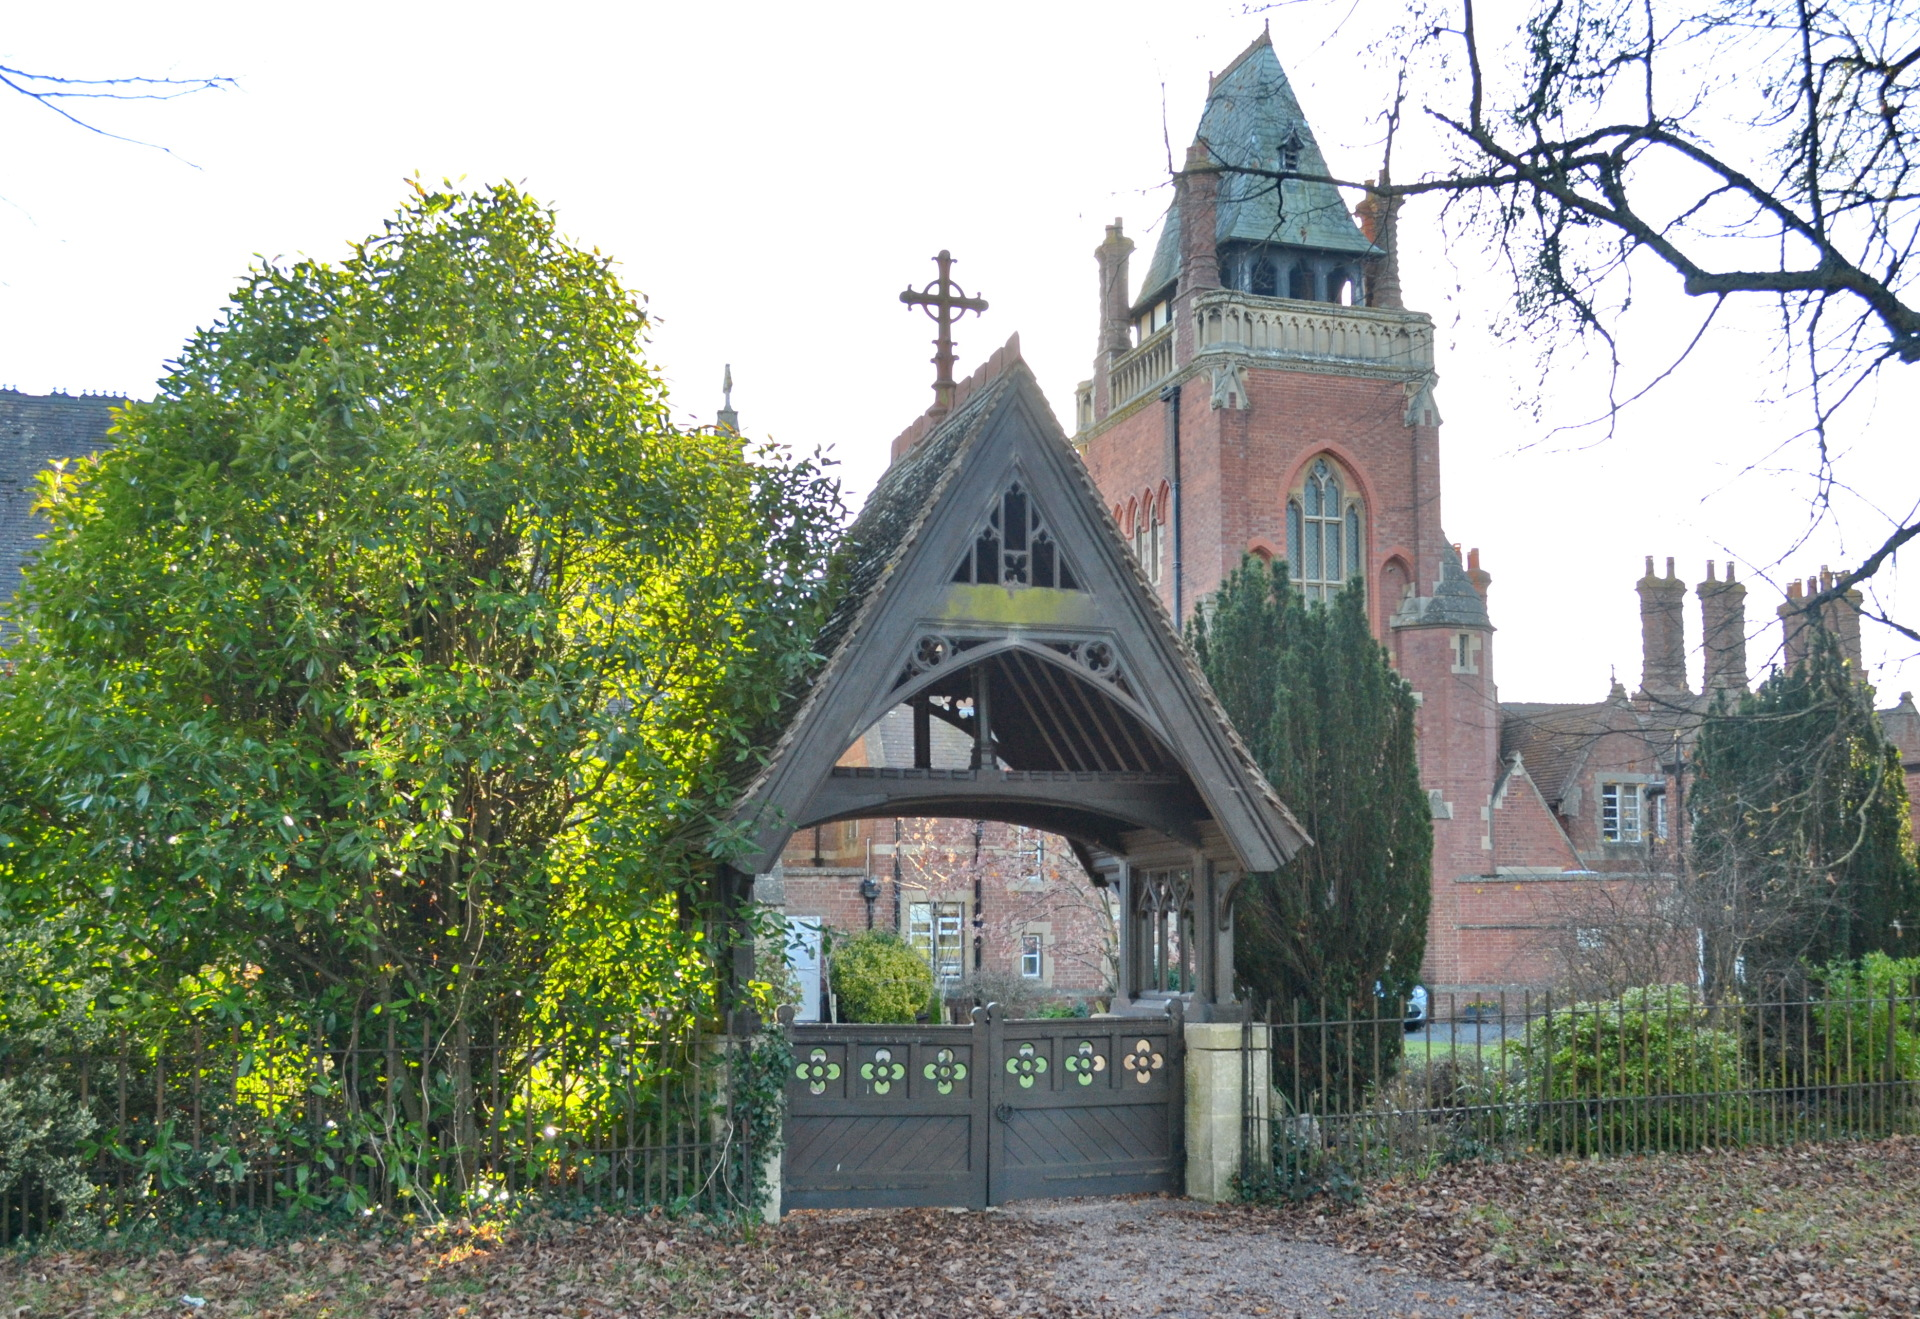 Lychgate and Clock-tower looking from the road